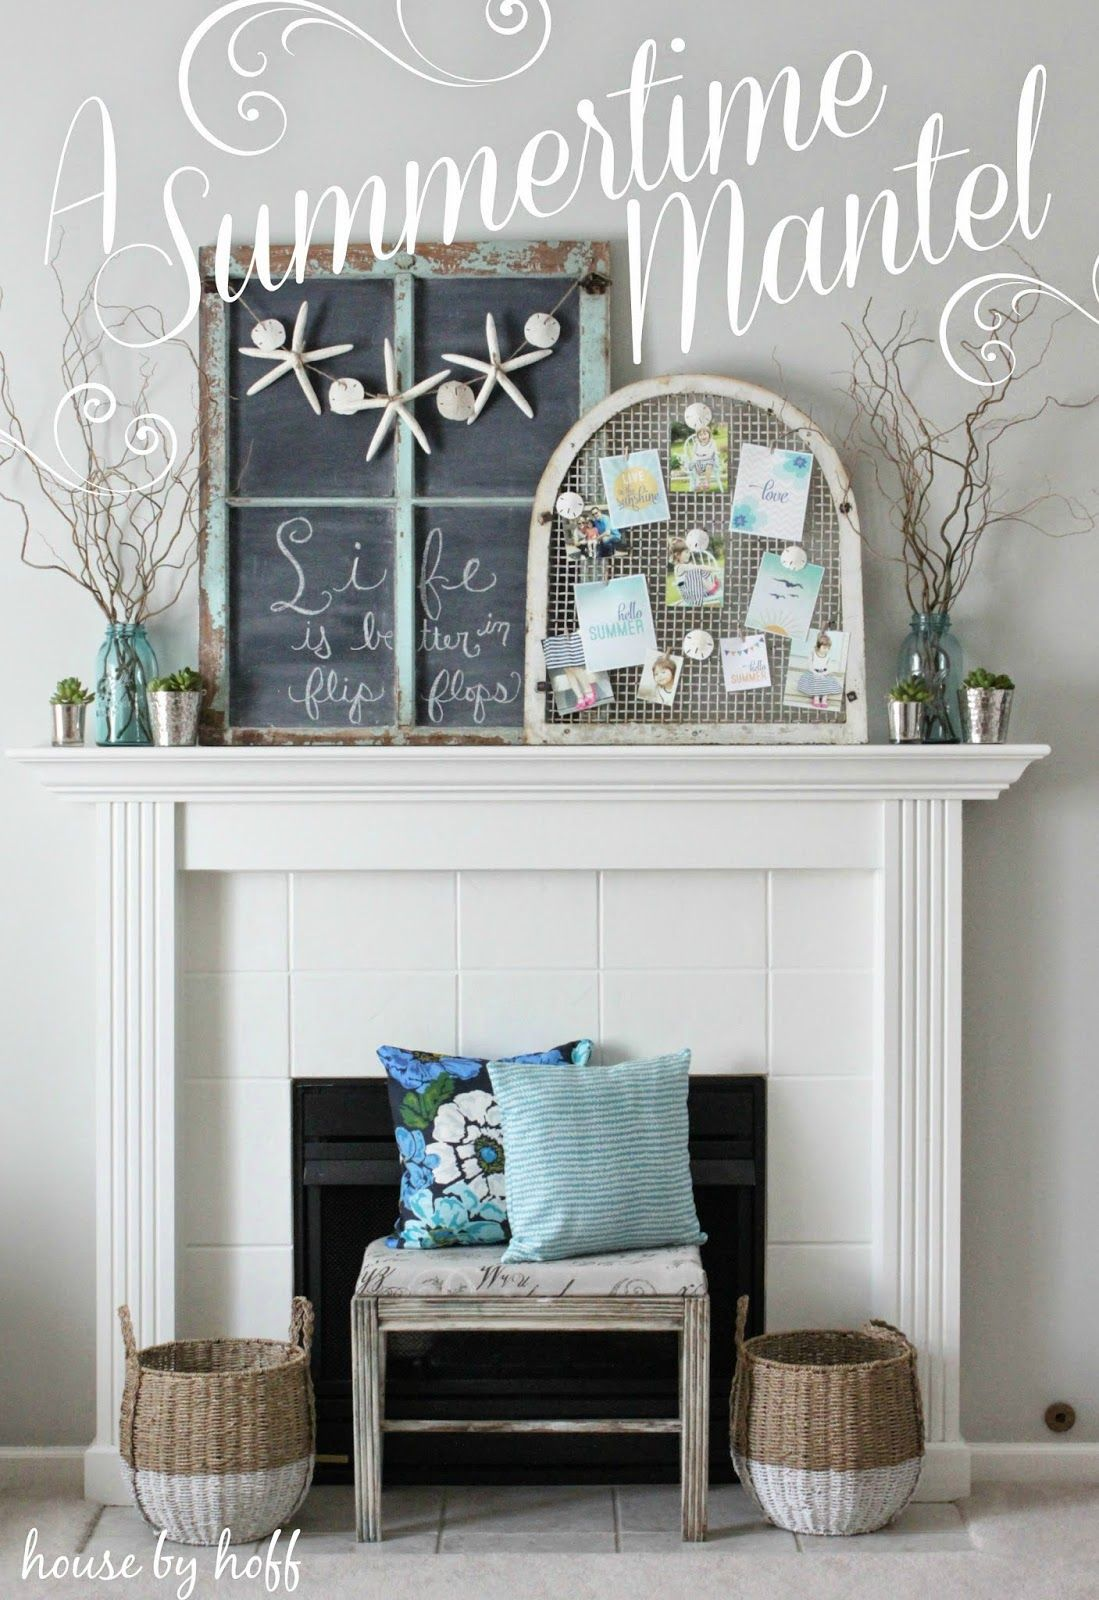 A Summertime Mantel...So many fun and inexpensive DIY ideas ...